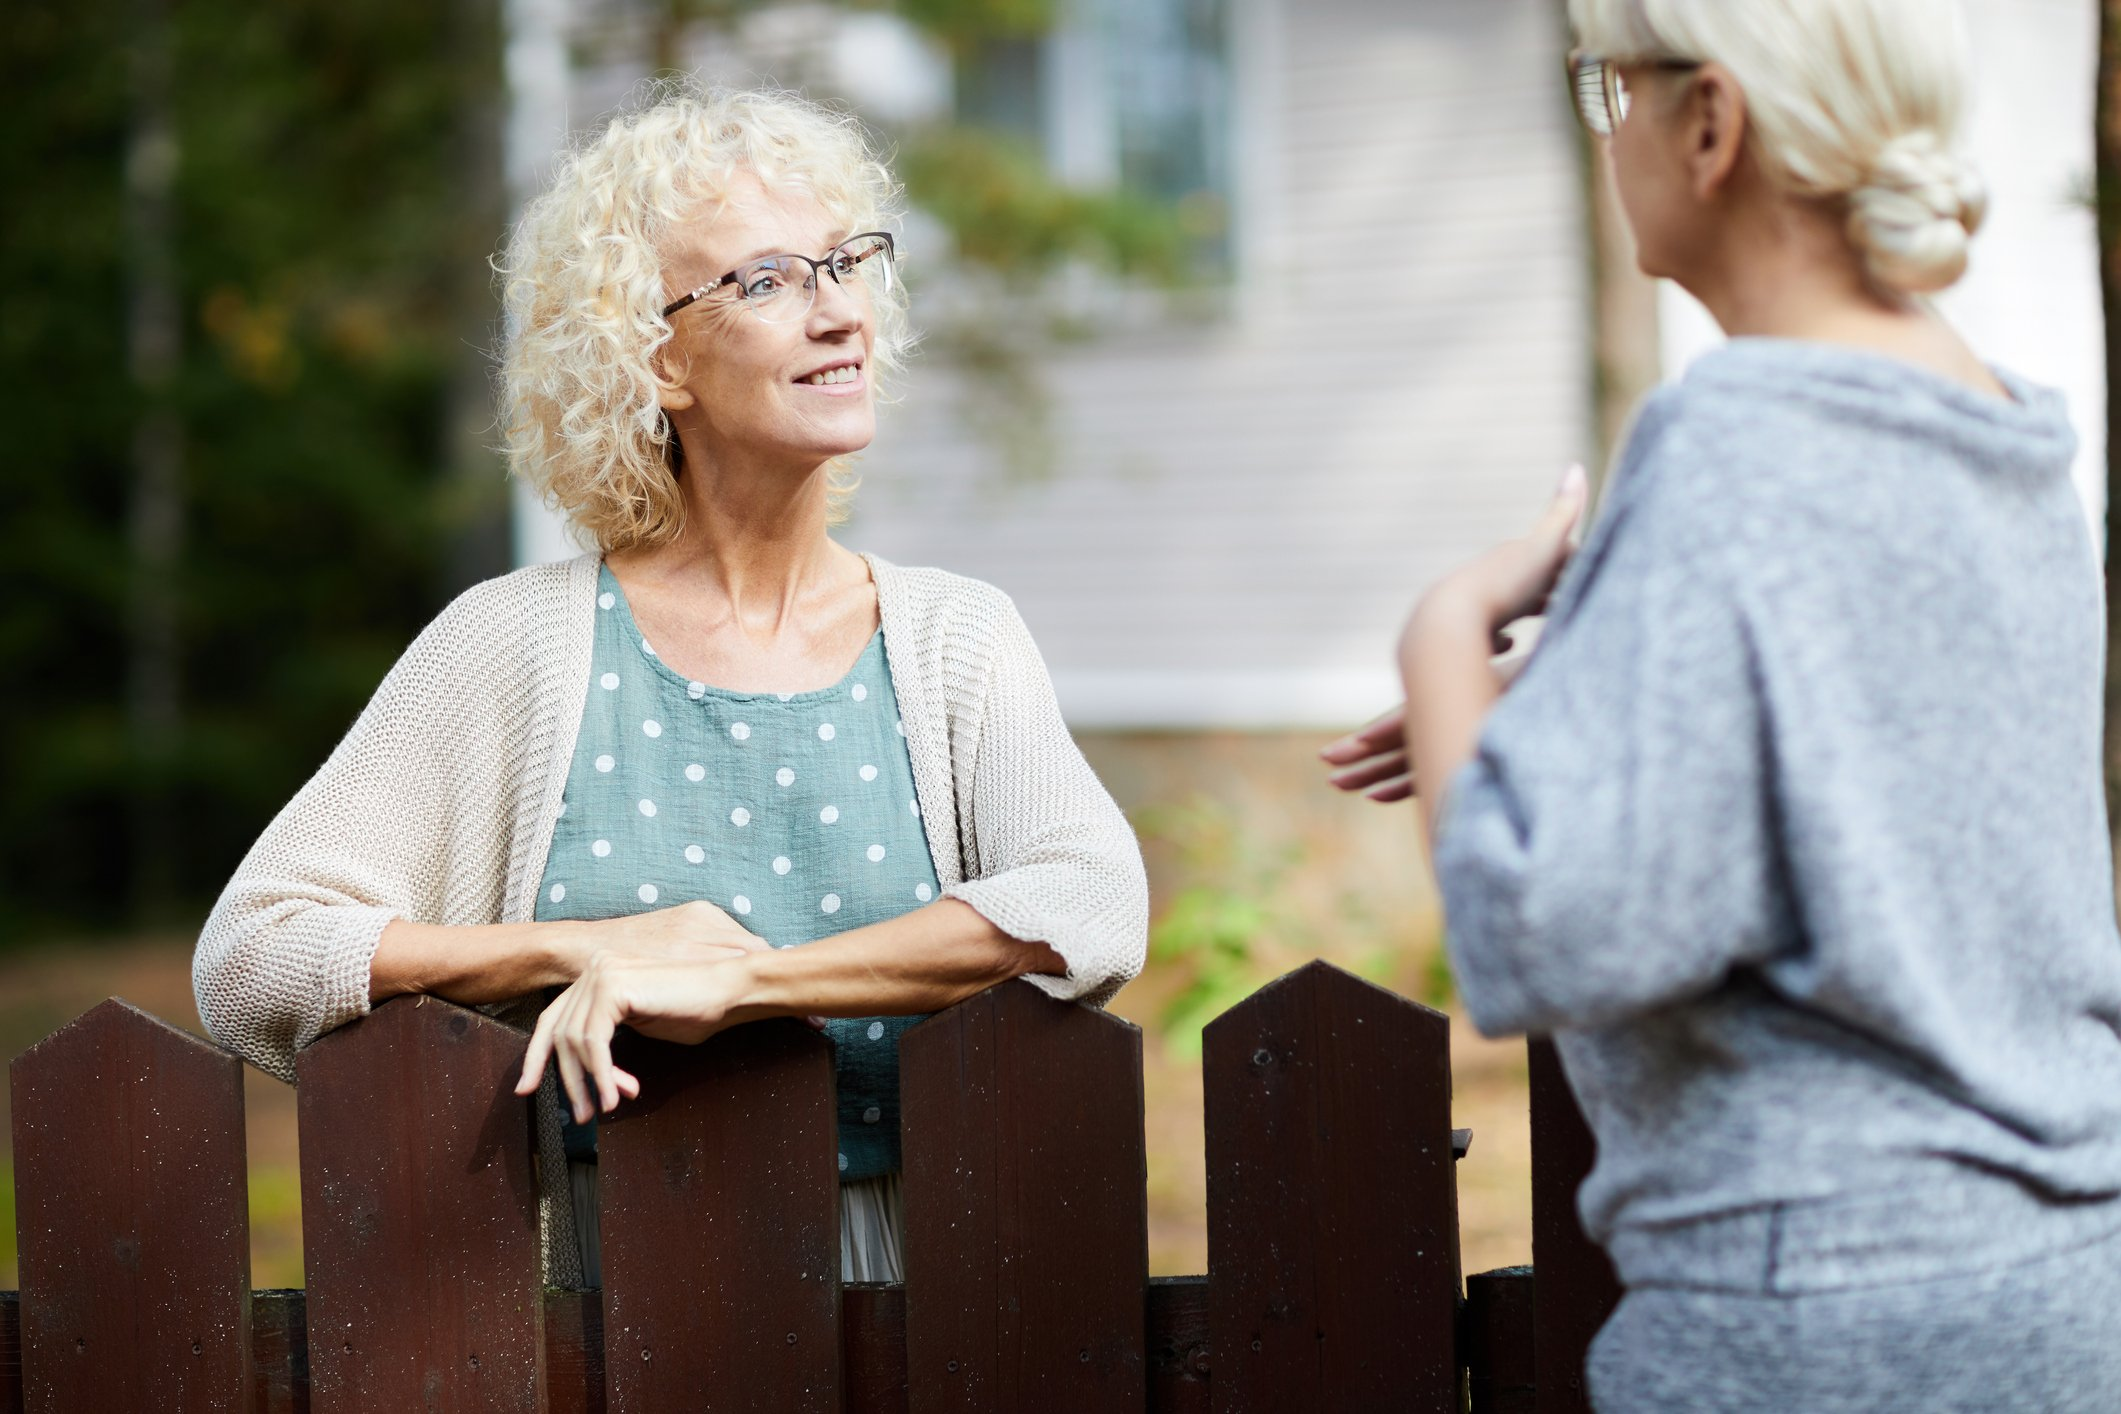 neighbours talk to each other